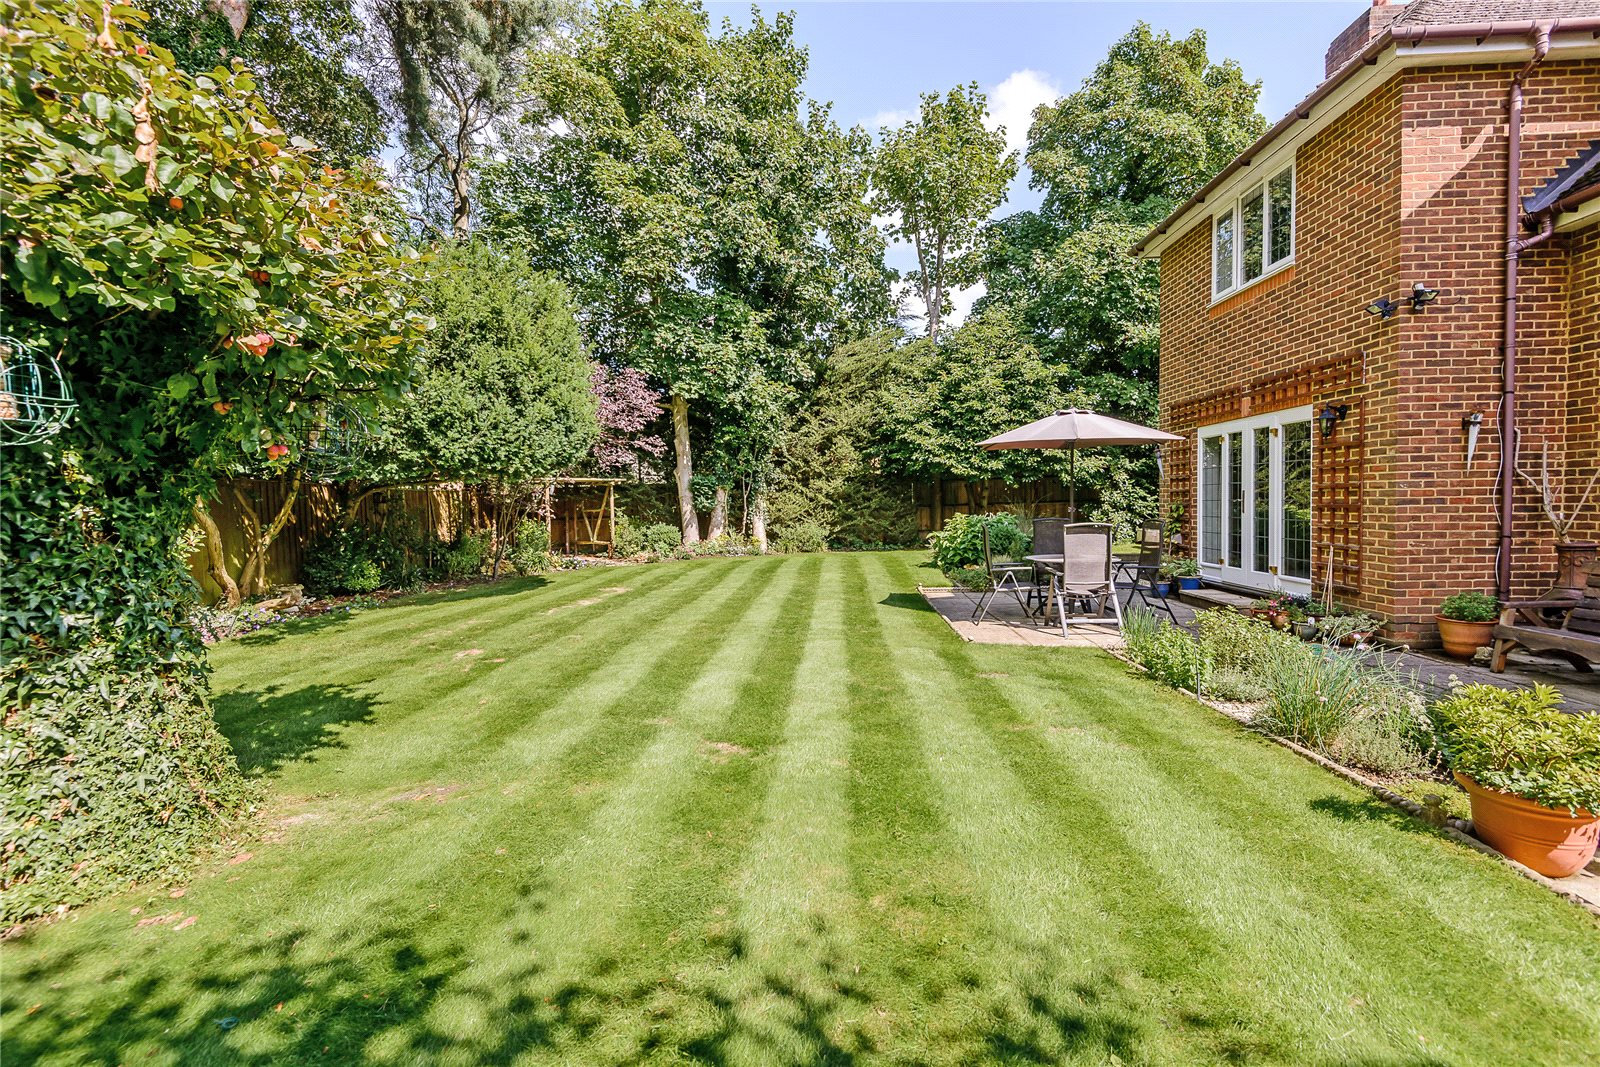 Additional photo for property listing at Winkfield Row, Winkfield, Berkshire, RG42 Berkshire, England